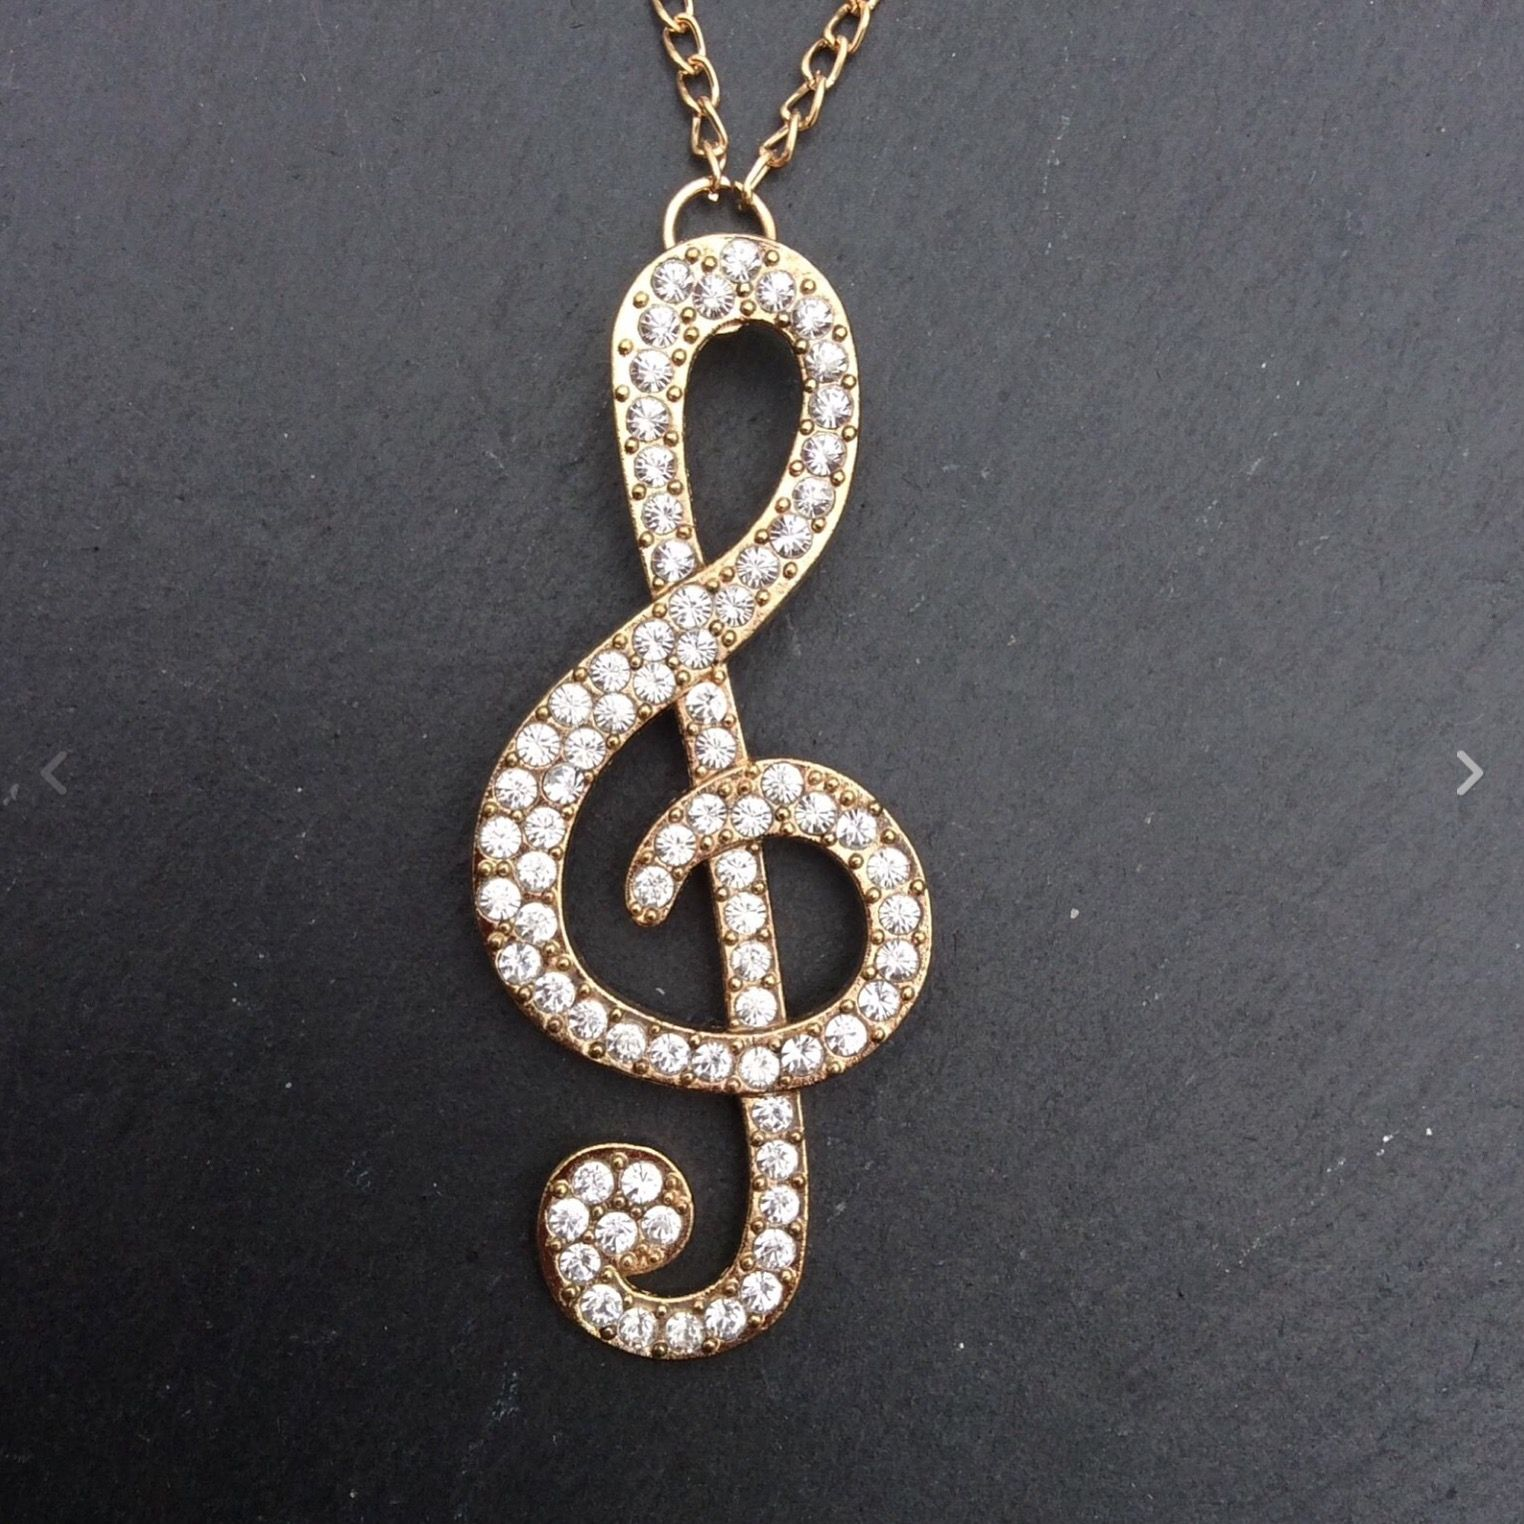 FREE GIFT BAG Silver Plated Crystal Necklace Chain Music Treble Clef Jewellery